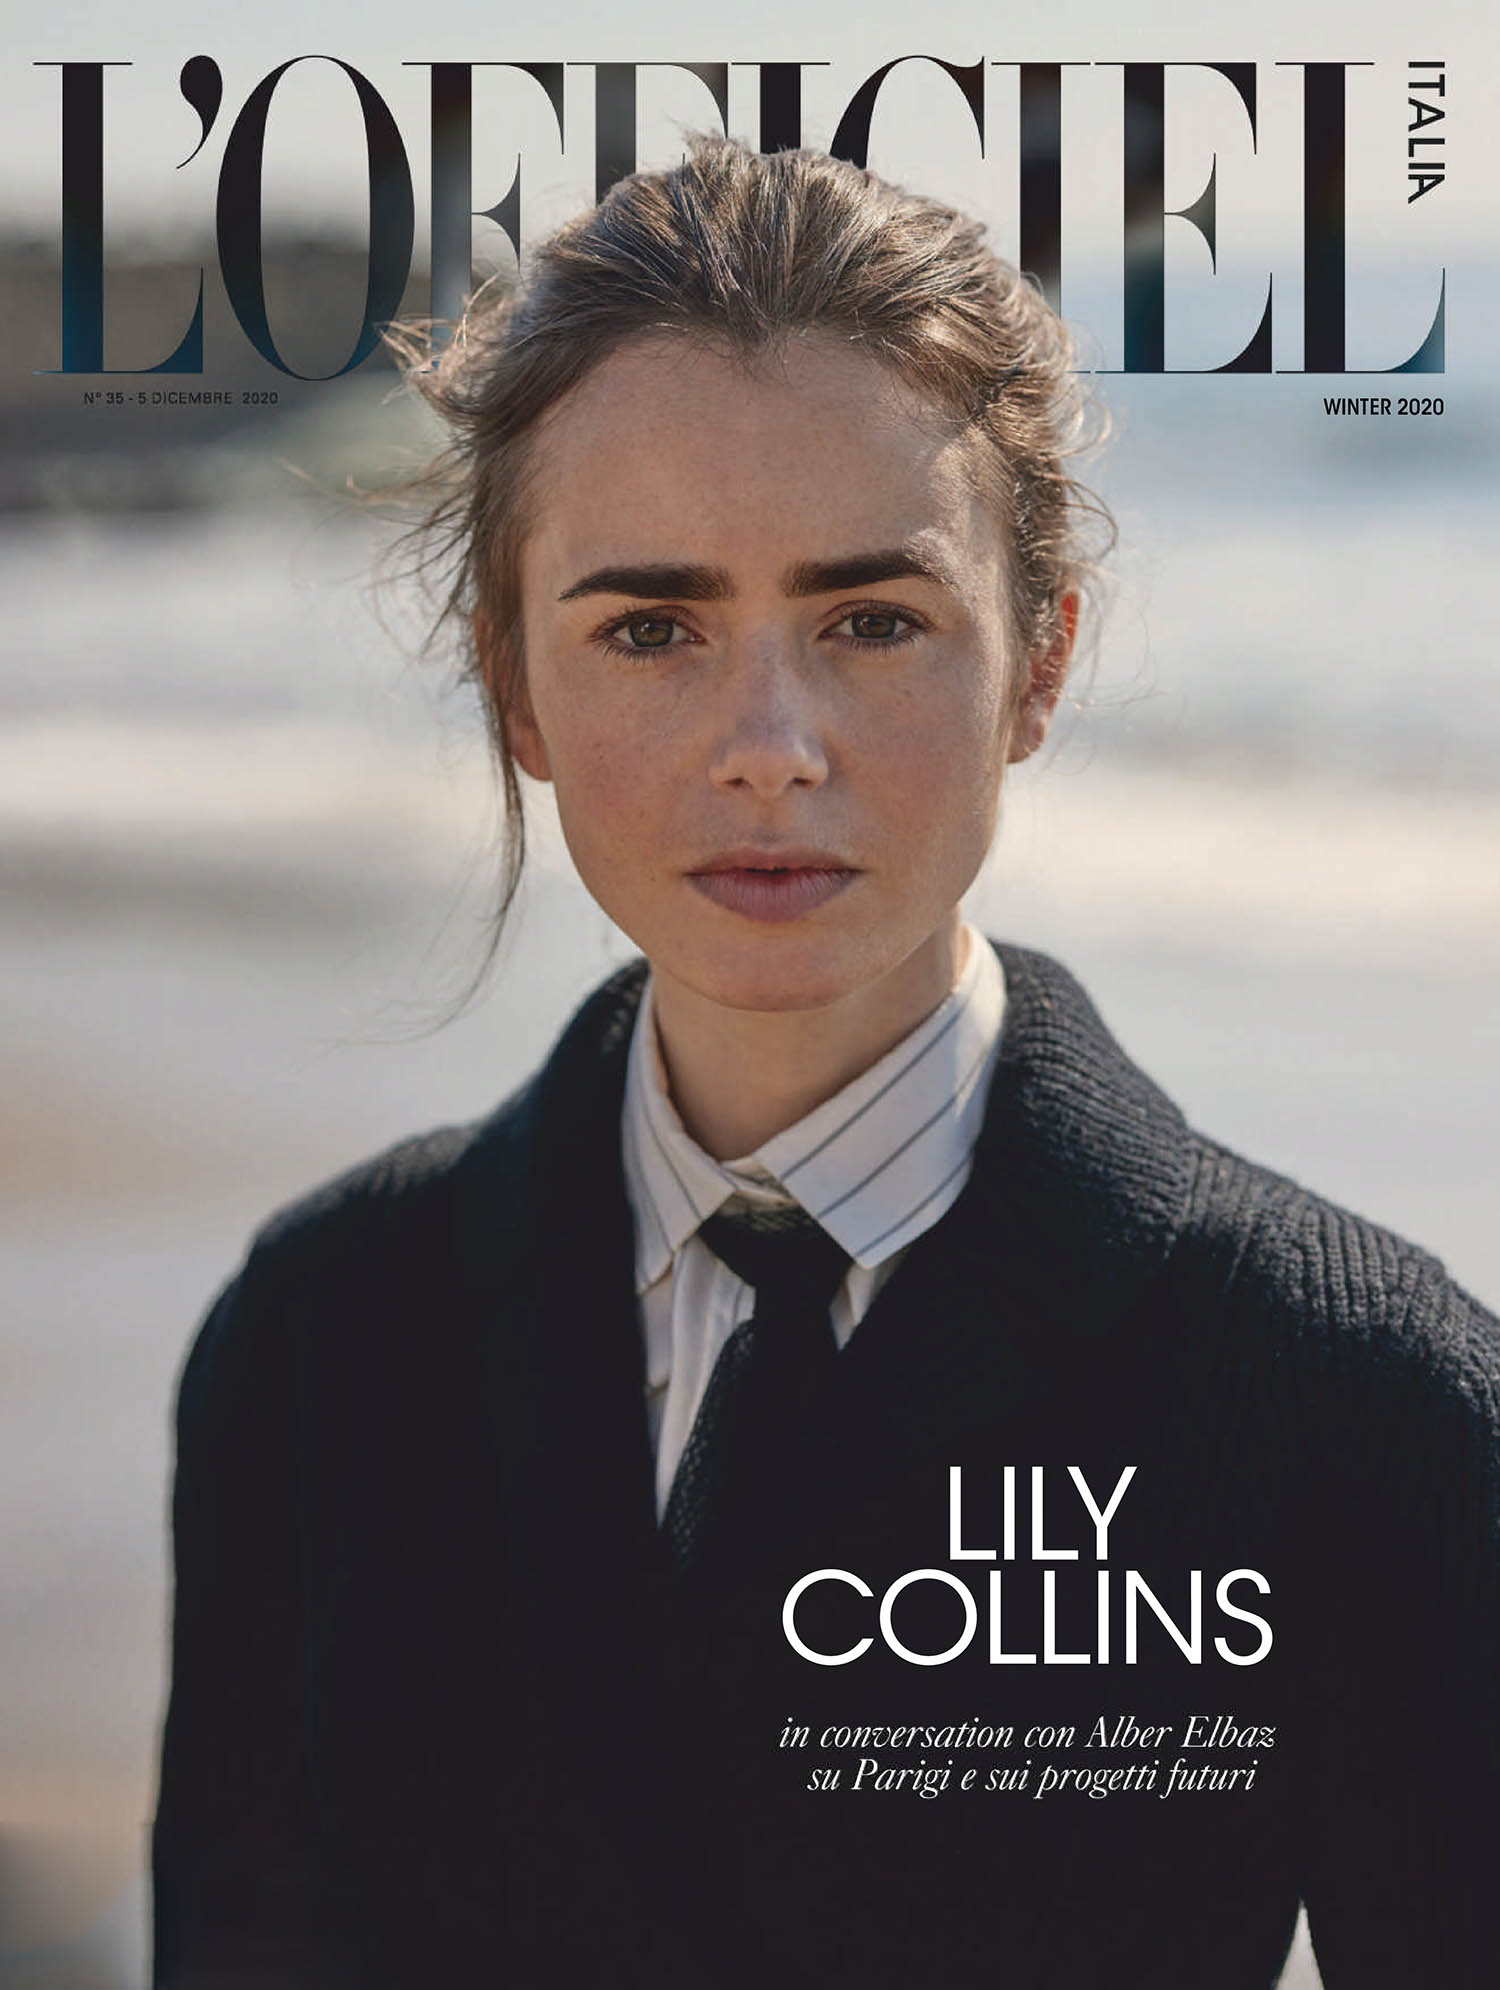 Lily Collins covers L'Officiel Global Winter 2020 by Sam Taylor Johnson